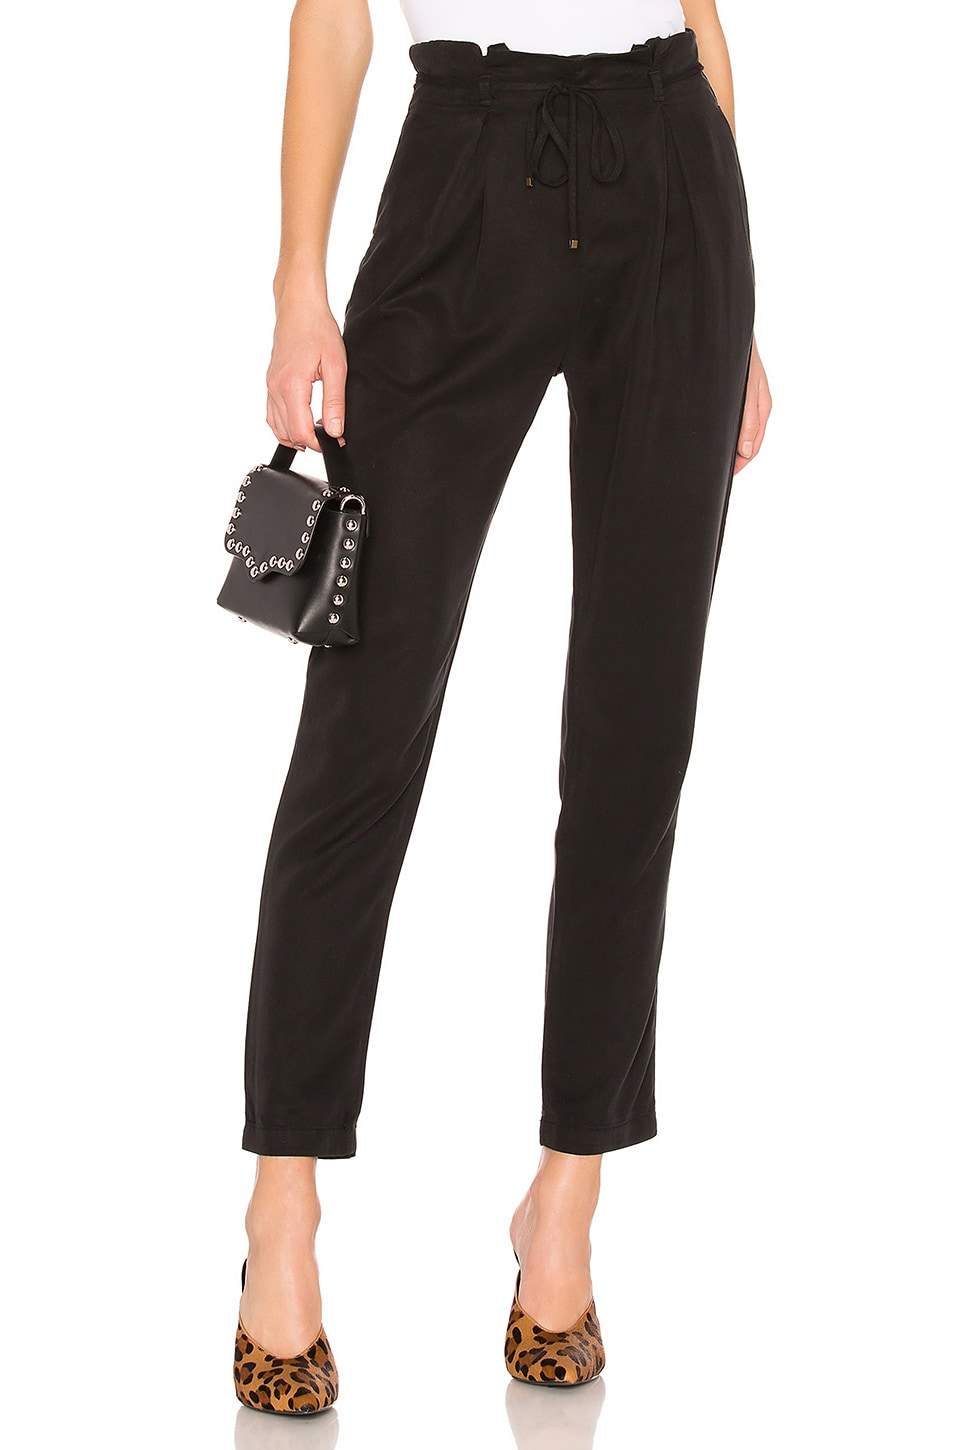 YFB CLOTHING Mellina Pant in Black